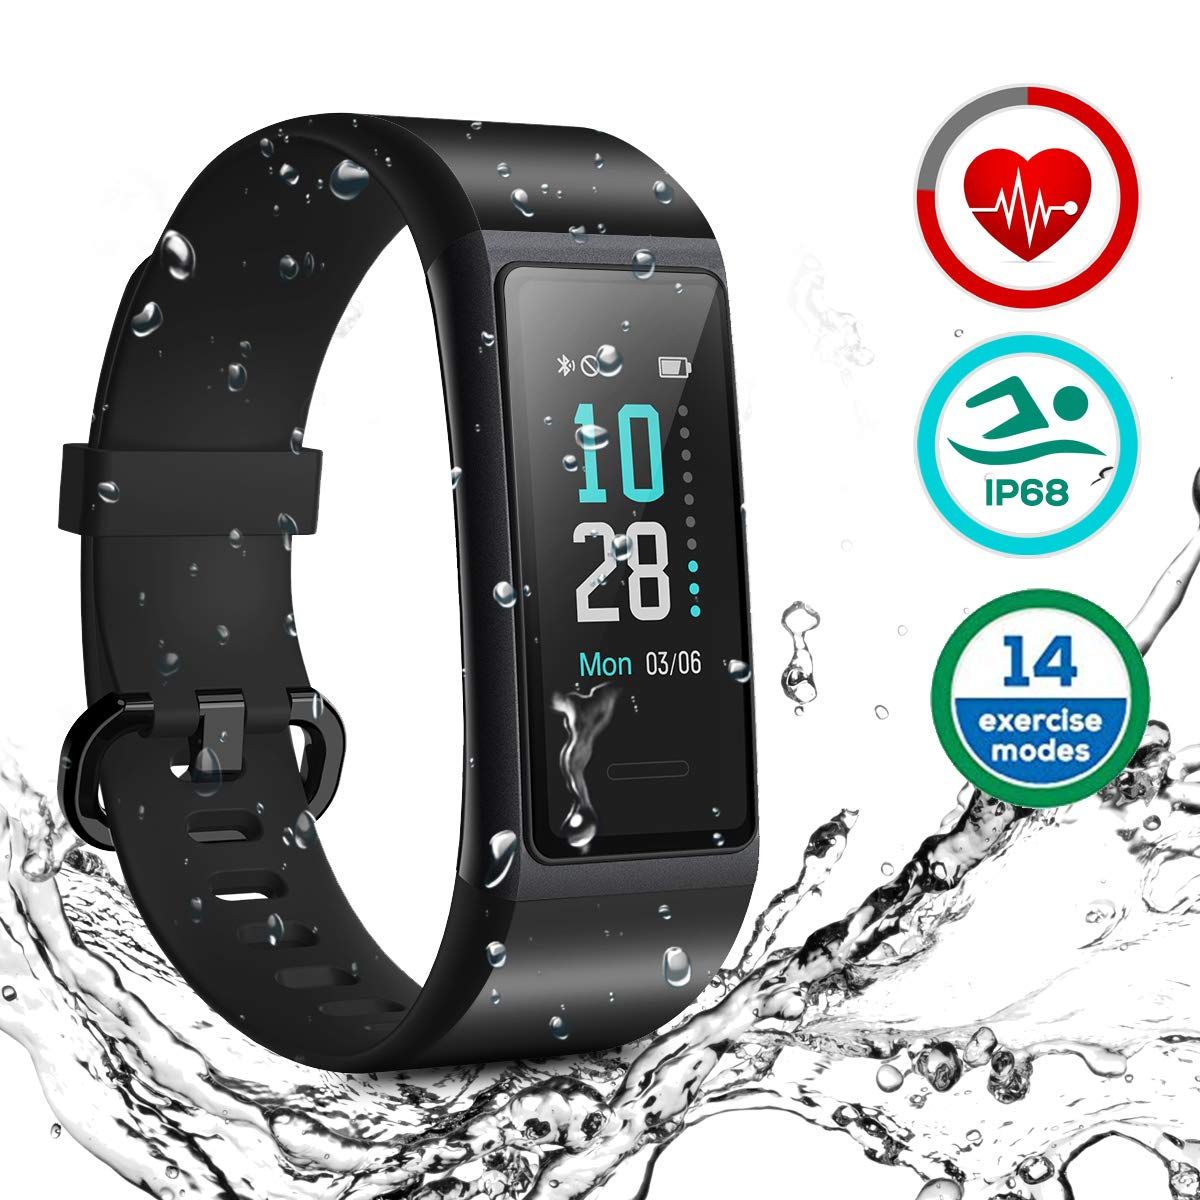 HOMVILLA Fitness Tracker, Smartwatch Activity Tracker Sports Smart Band Impermeabile IP68 Polsino Bluetooth con Monitor della frequenza cardiaca Pedometro Monitor del Sonno Caloria per iOS Android